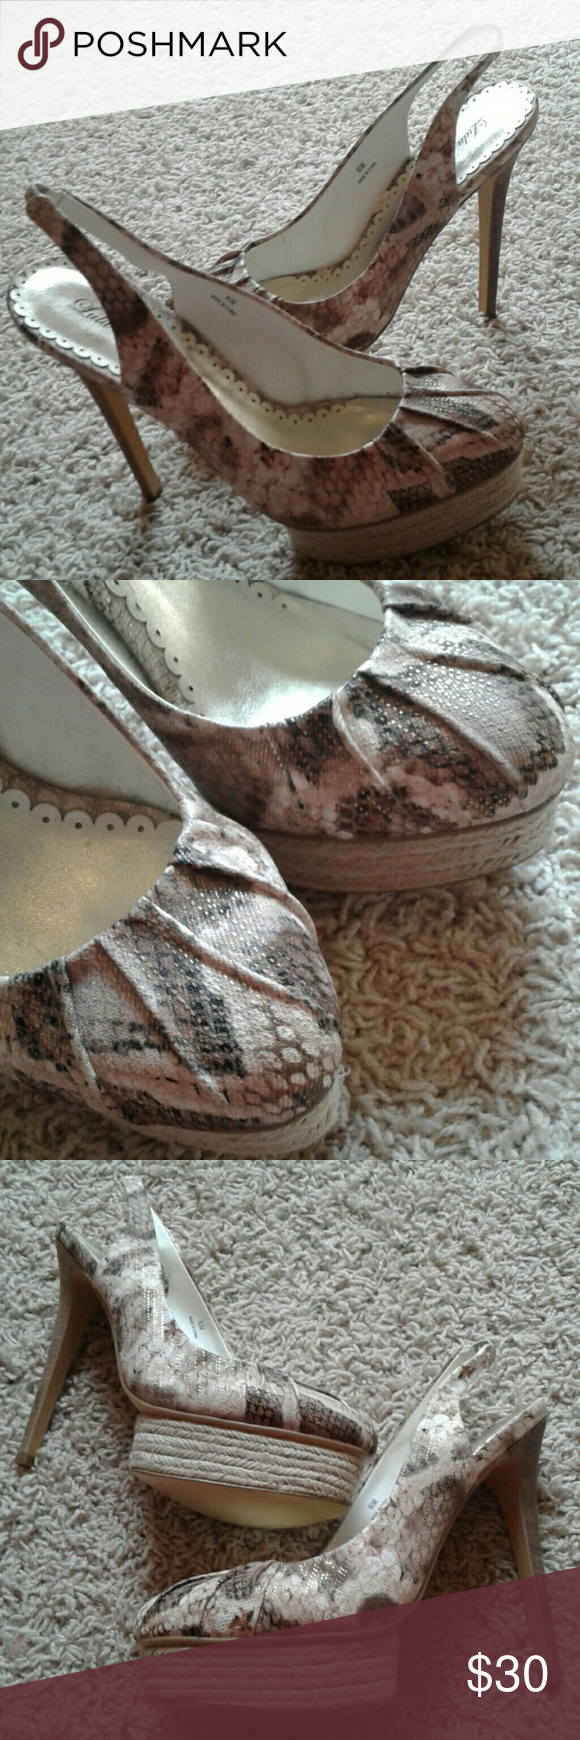 NEW Metallic Snakeskin Heels Brand new and never worn! PERFECT condition! Lulu Townsend Shoes Heels